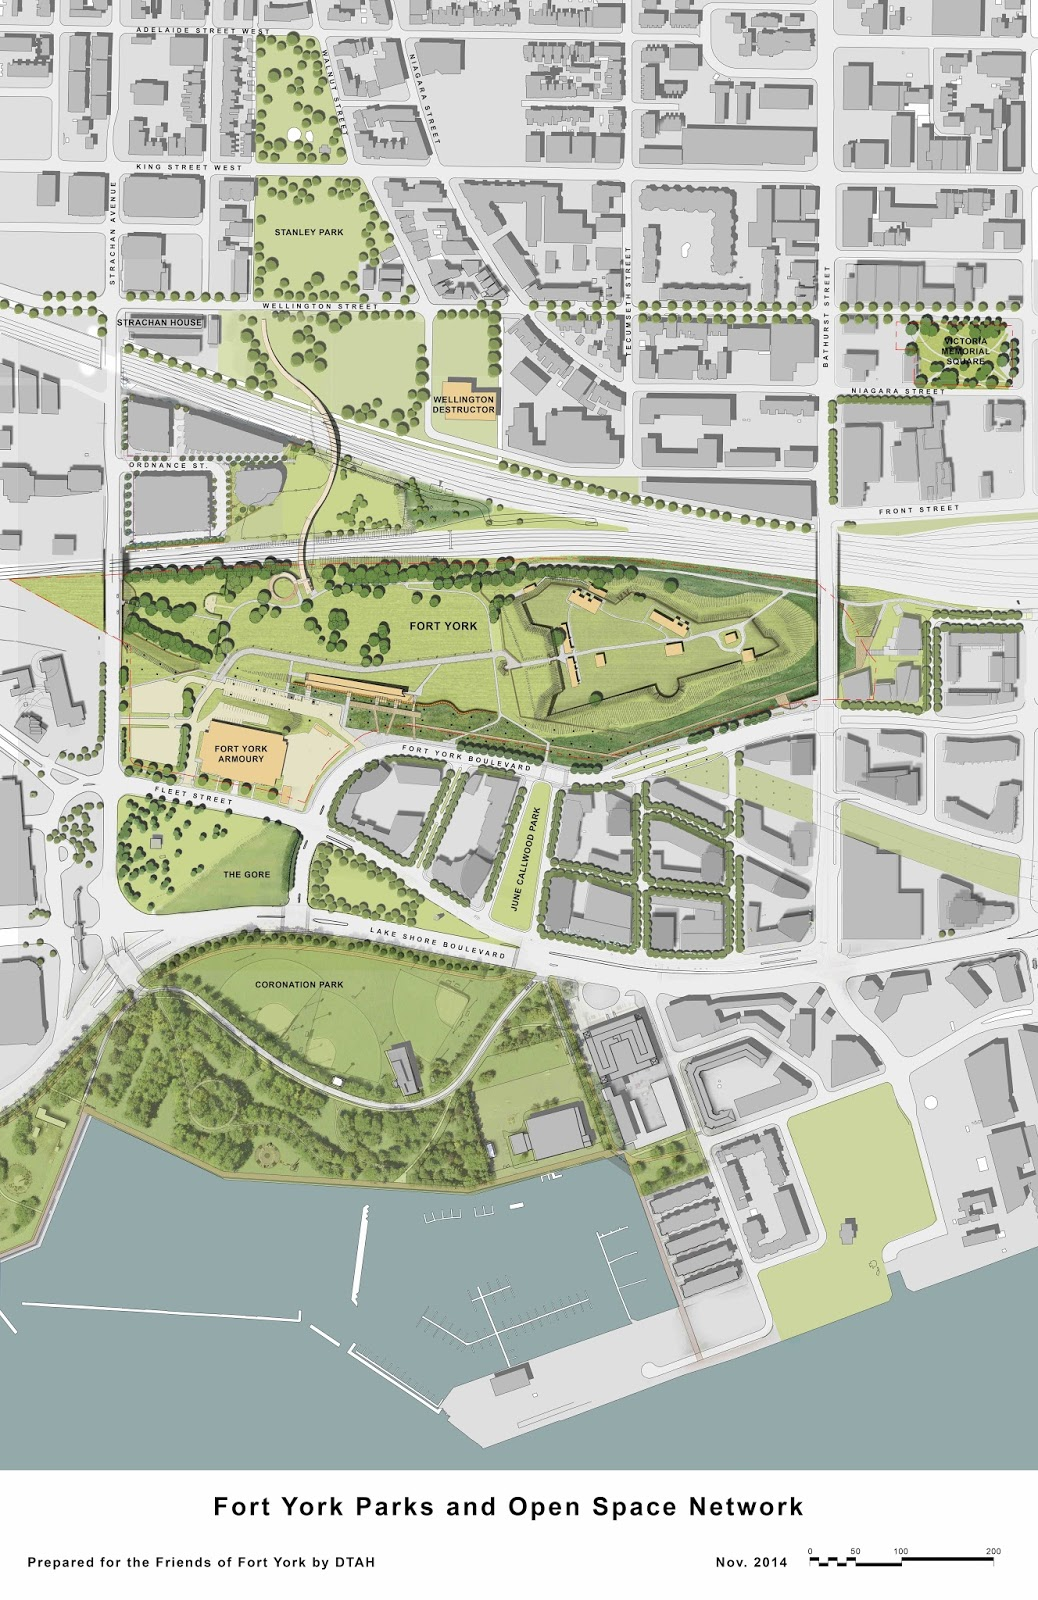 Map: 2014 Fort York Parks and Open Space Network. Prepared by DTAH for the Friends of Fort York